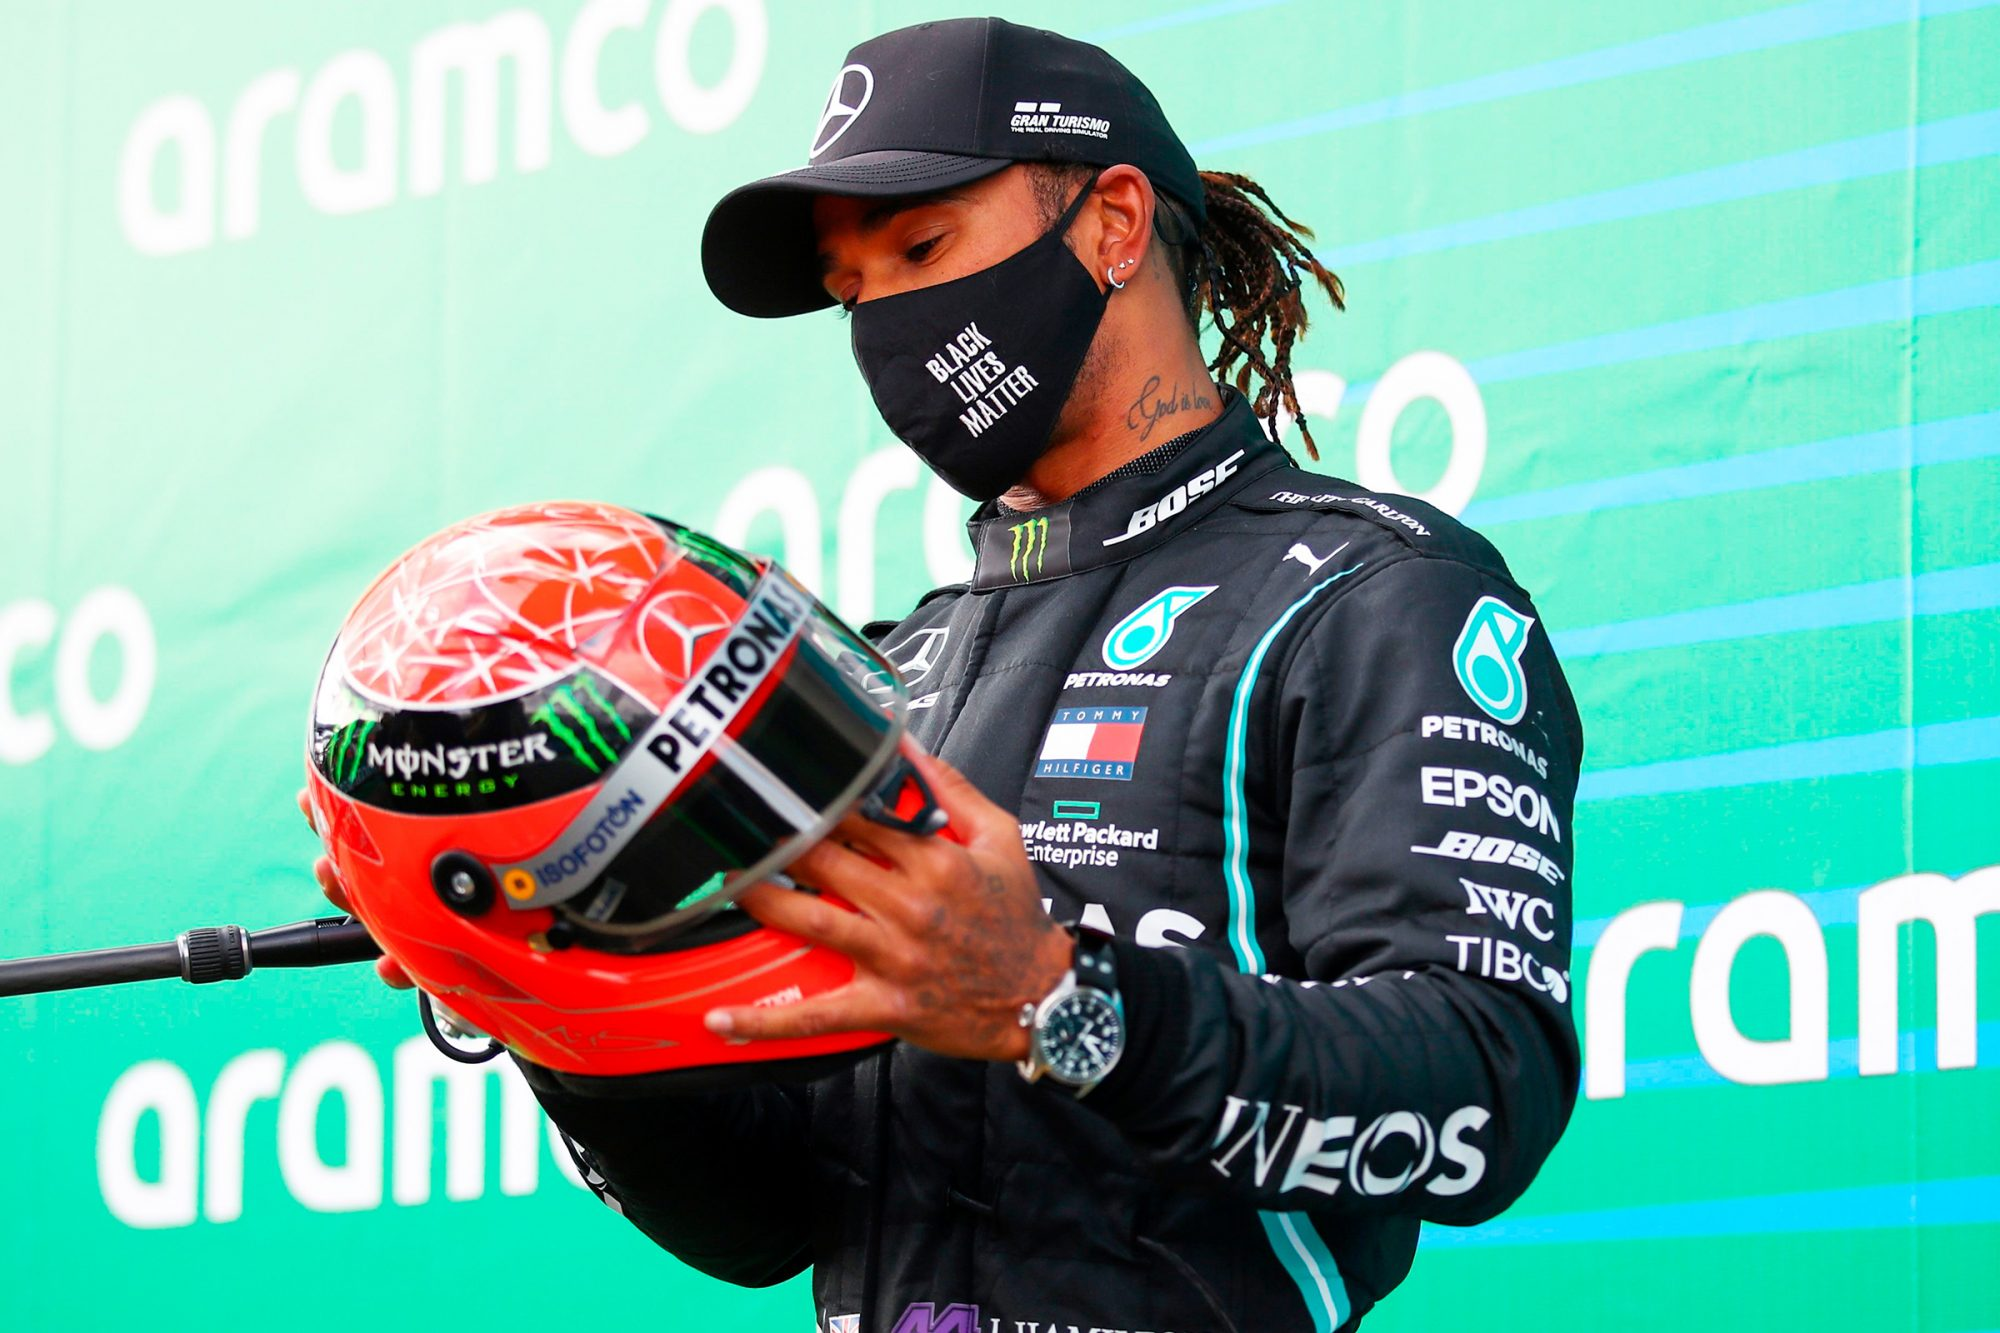 """On Dec. 1, Hamilton's Mercedes teamconfirmed to CNNthat the 35-year-old British Formula 1 driver was self-isolating after testing positive, and is only experiencing mild symptoms.                             """"He is otherwise fit and well, and the entire team sends him its very best wishes for a swift recovery,"""" the team said in a statement.                             According to Mercedes, Hamilton woke up on Nov. 30 with mild symptoms and later found out he had been exposed to the virus prior to the Bahrain Grand Prix the day before. He had tested negative three times the previous week ahead of the race.                             In his own social media post, Hamilton wrote that he was """"gutted to not be able to race this weekend but my priority is to follow the protocols and advice to protect others.""""                             He continued, """"I'm really lucky that I feel ok with only mild symptoms and will do my best to stay fit and healthy."""""""